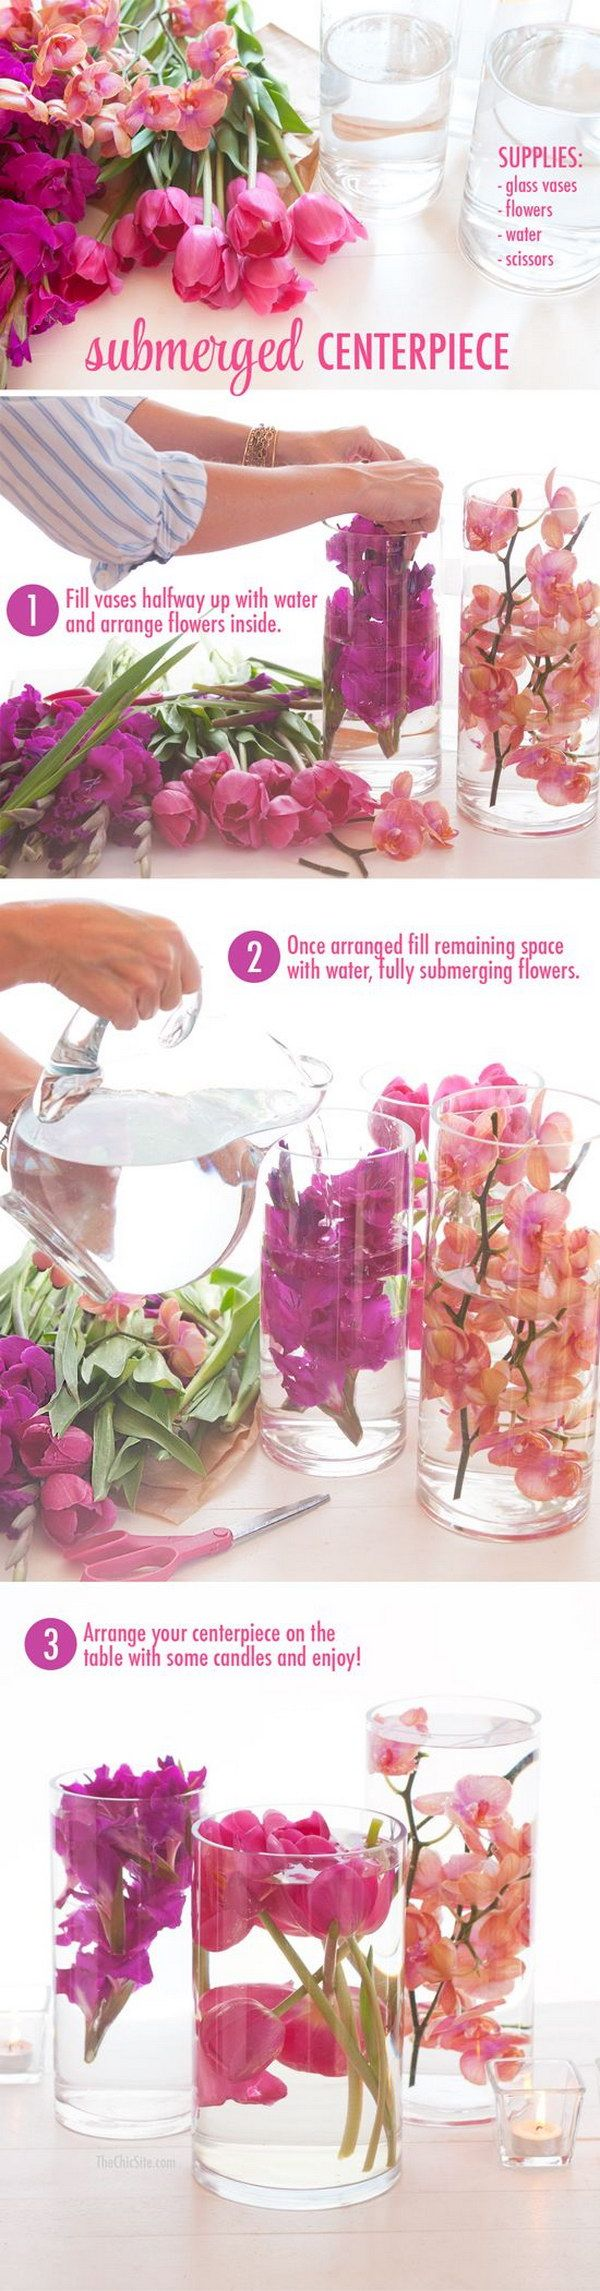 9 Submerged Flower Centerpiece                                                                                                                                                                                 More